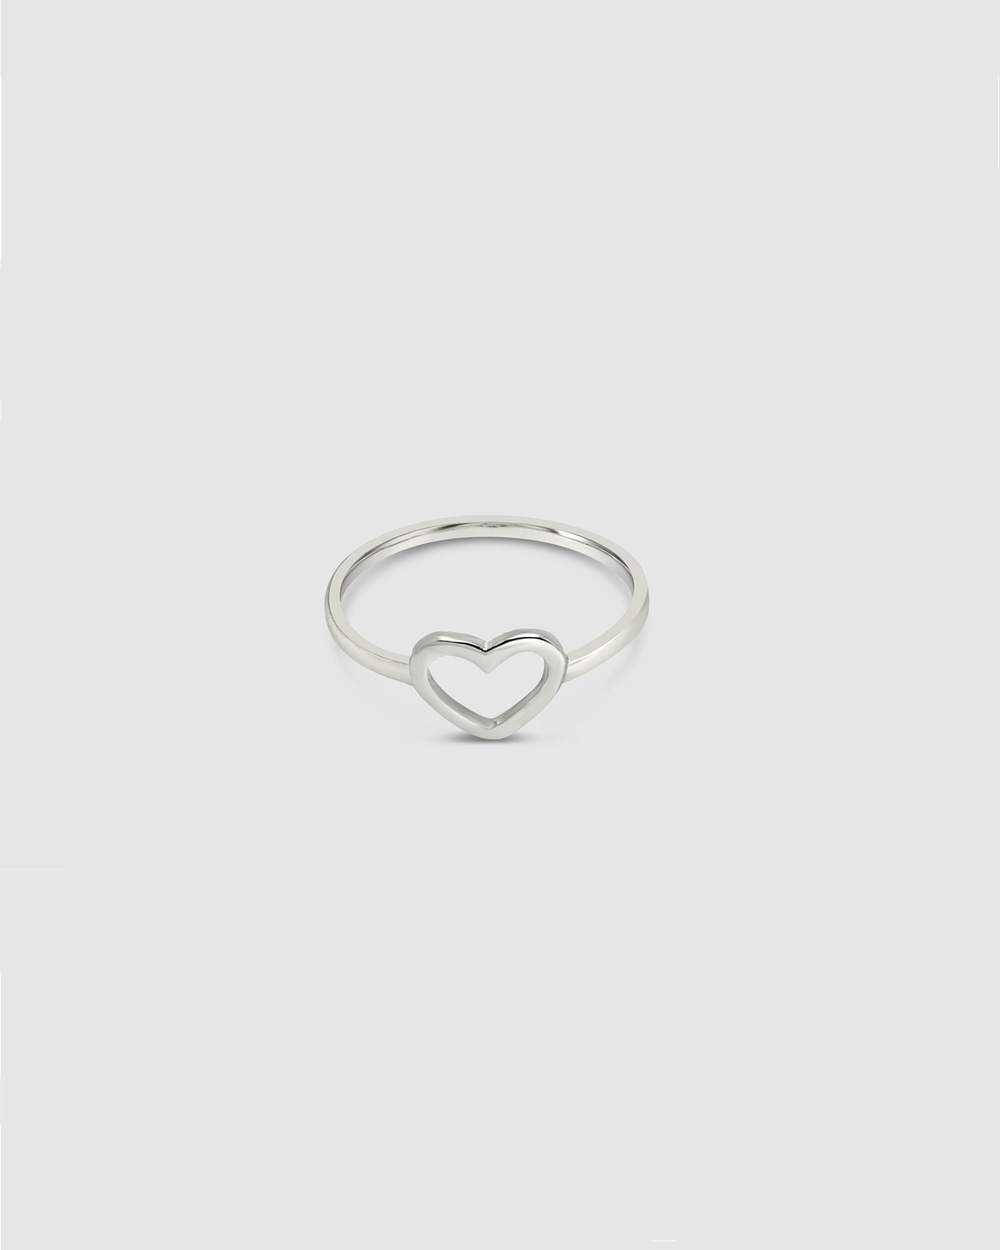 Ichu Heart Ring Jewellery 925 Sterling Silver